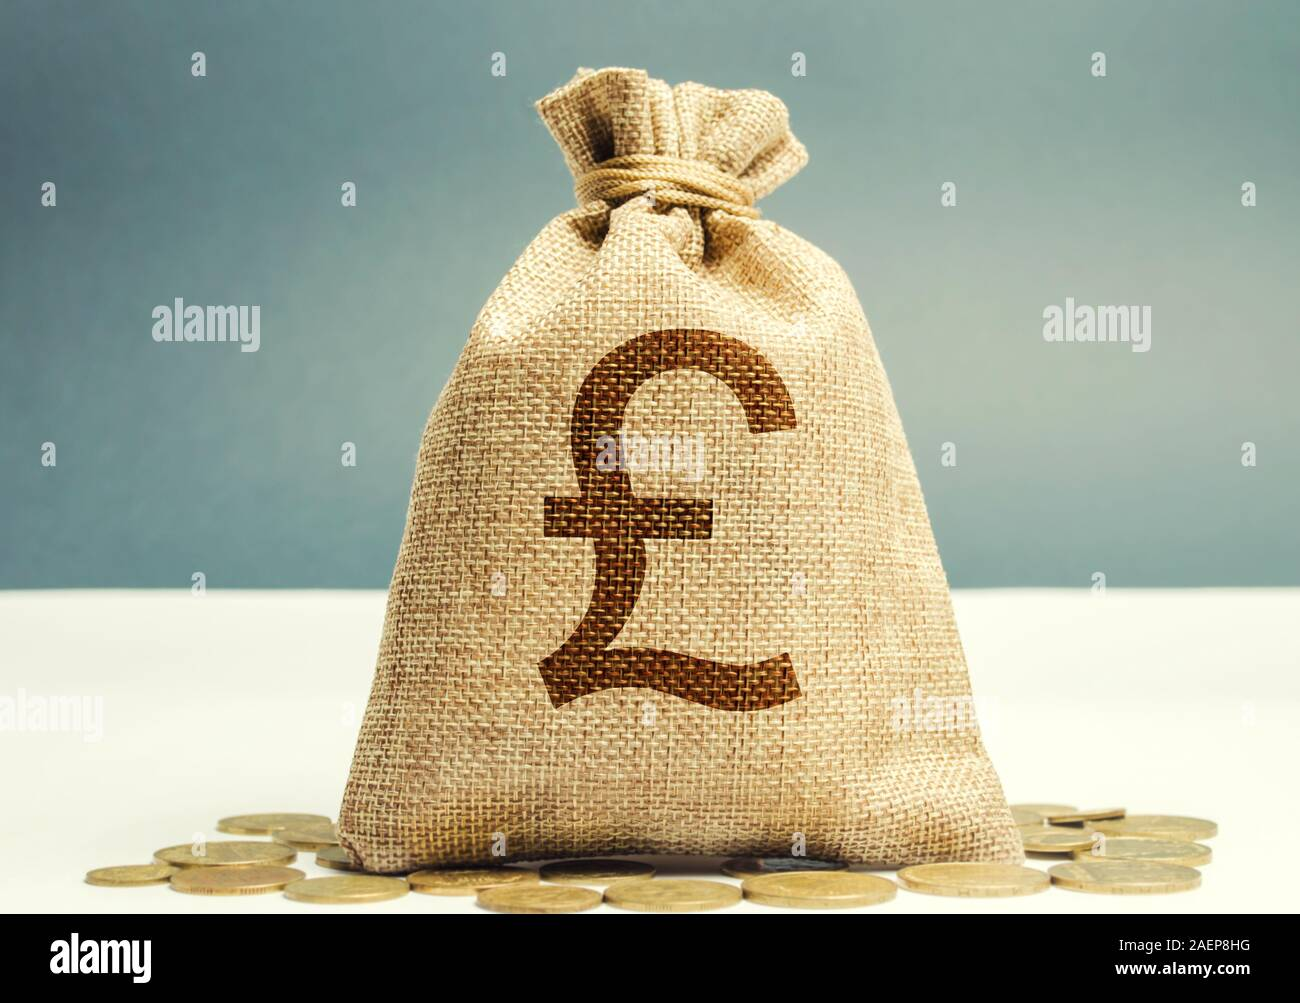 Money bag with coins. Profit and finance concept. Budget, salary, income. Distribution of money and savings. Pound sterling. Stock Photo